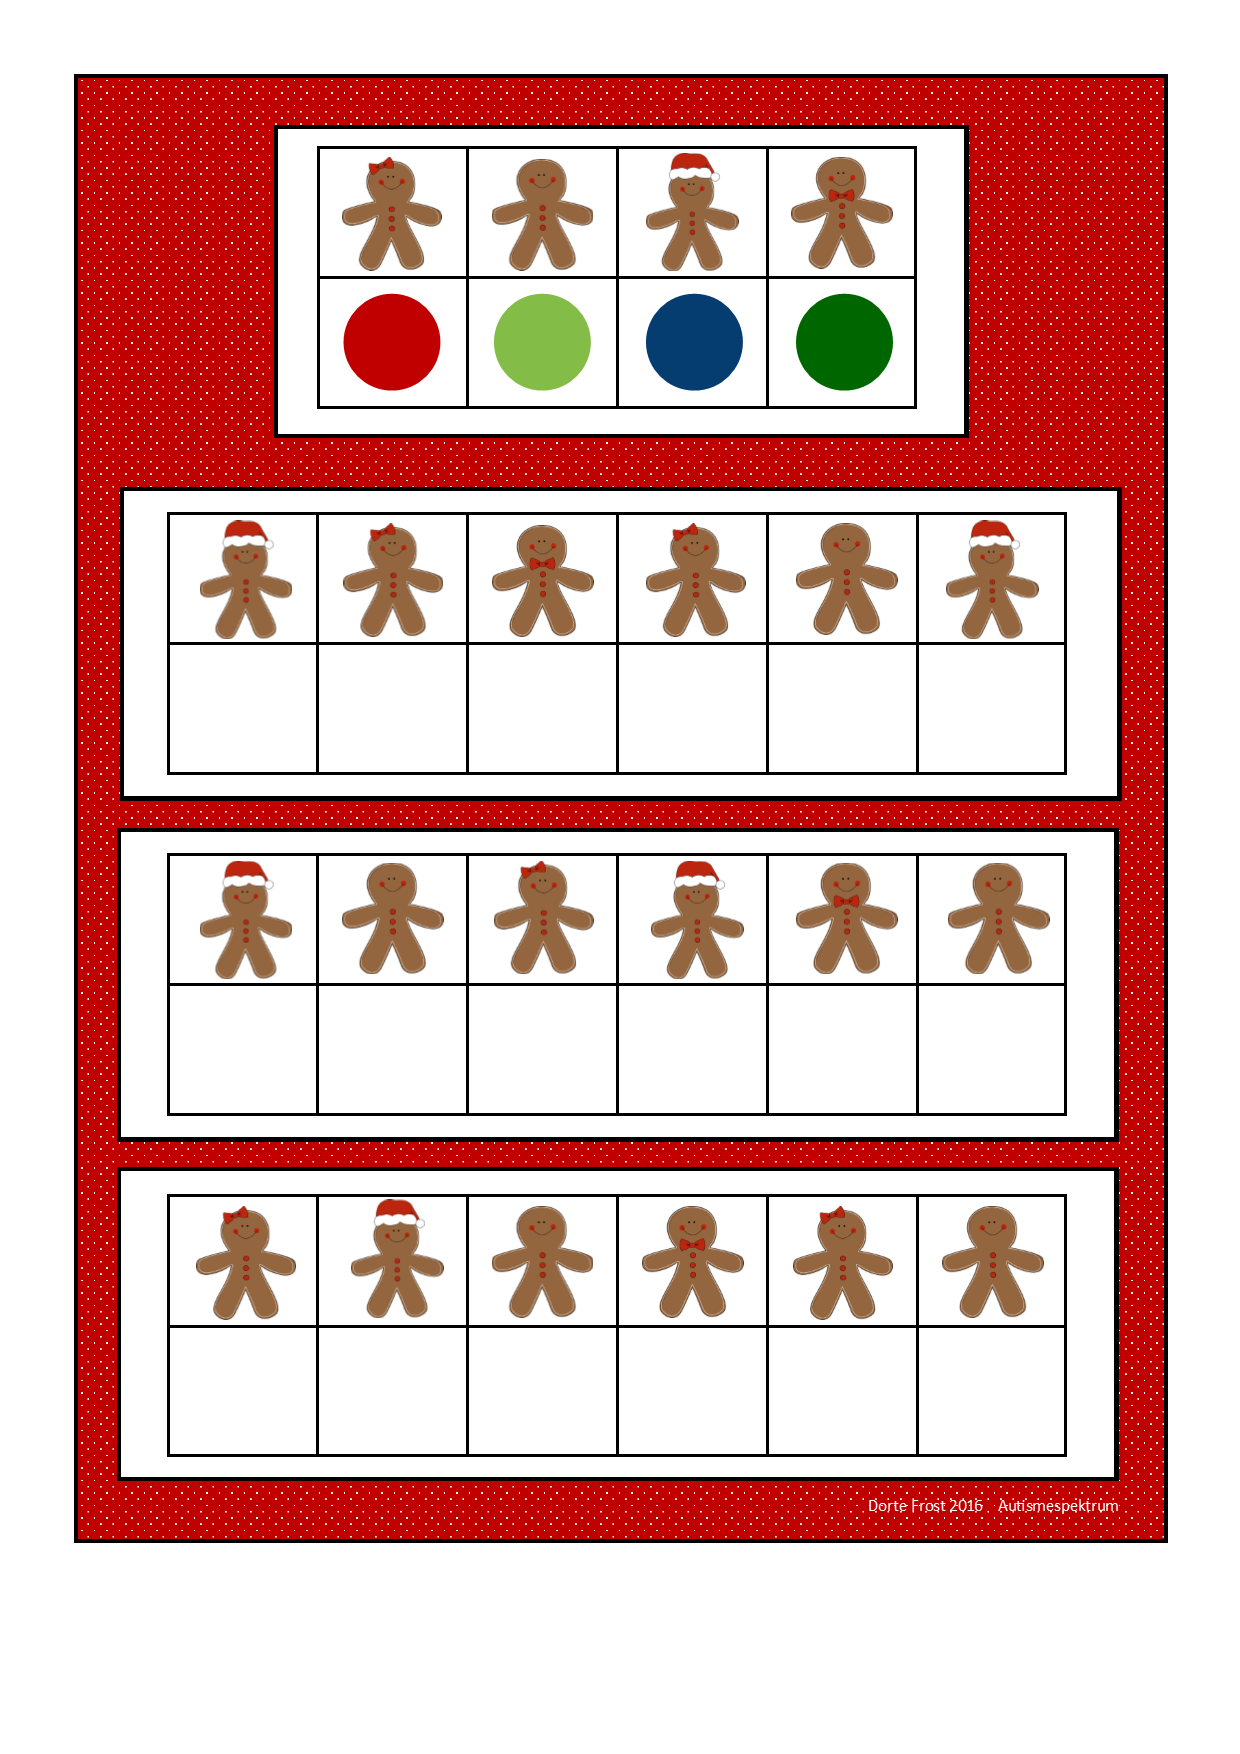 Board For The Gingerbread Visual Perception Game Find The Belonging Tiles On Autismespektrum On